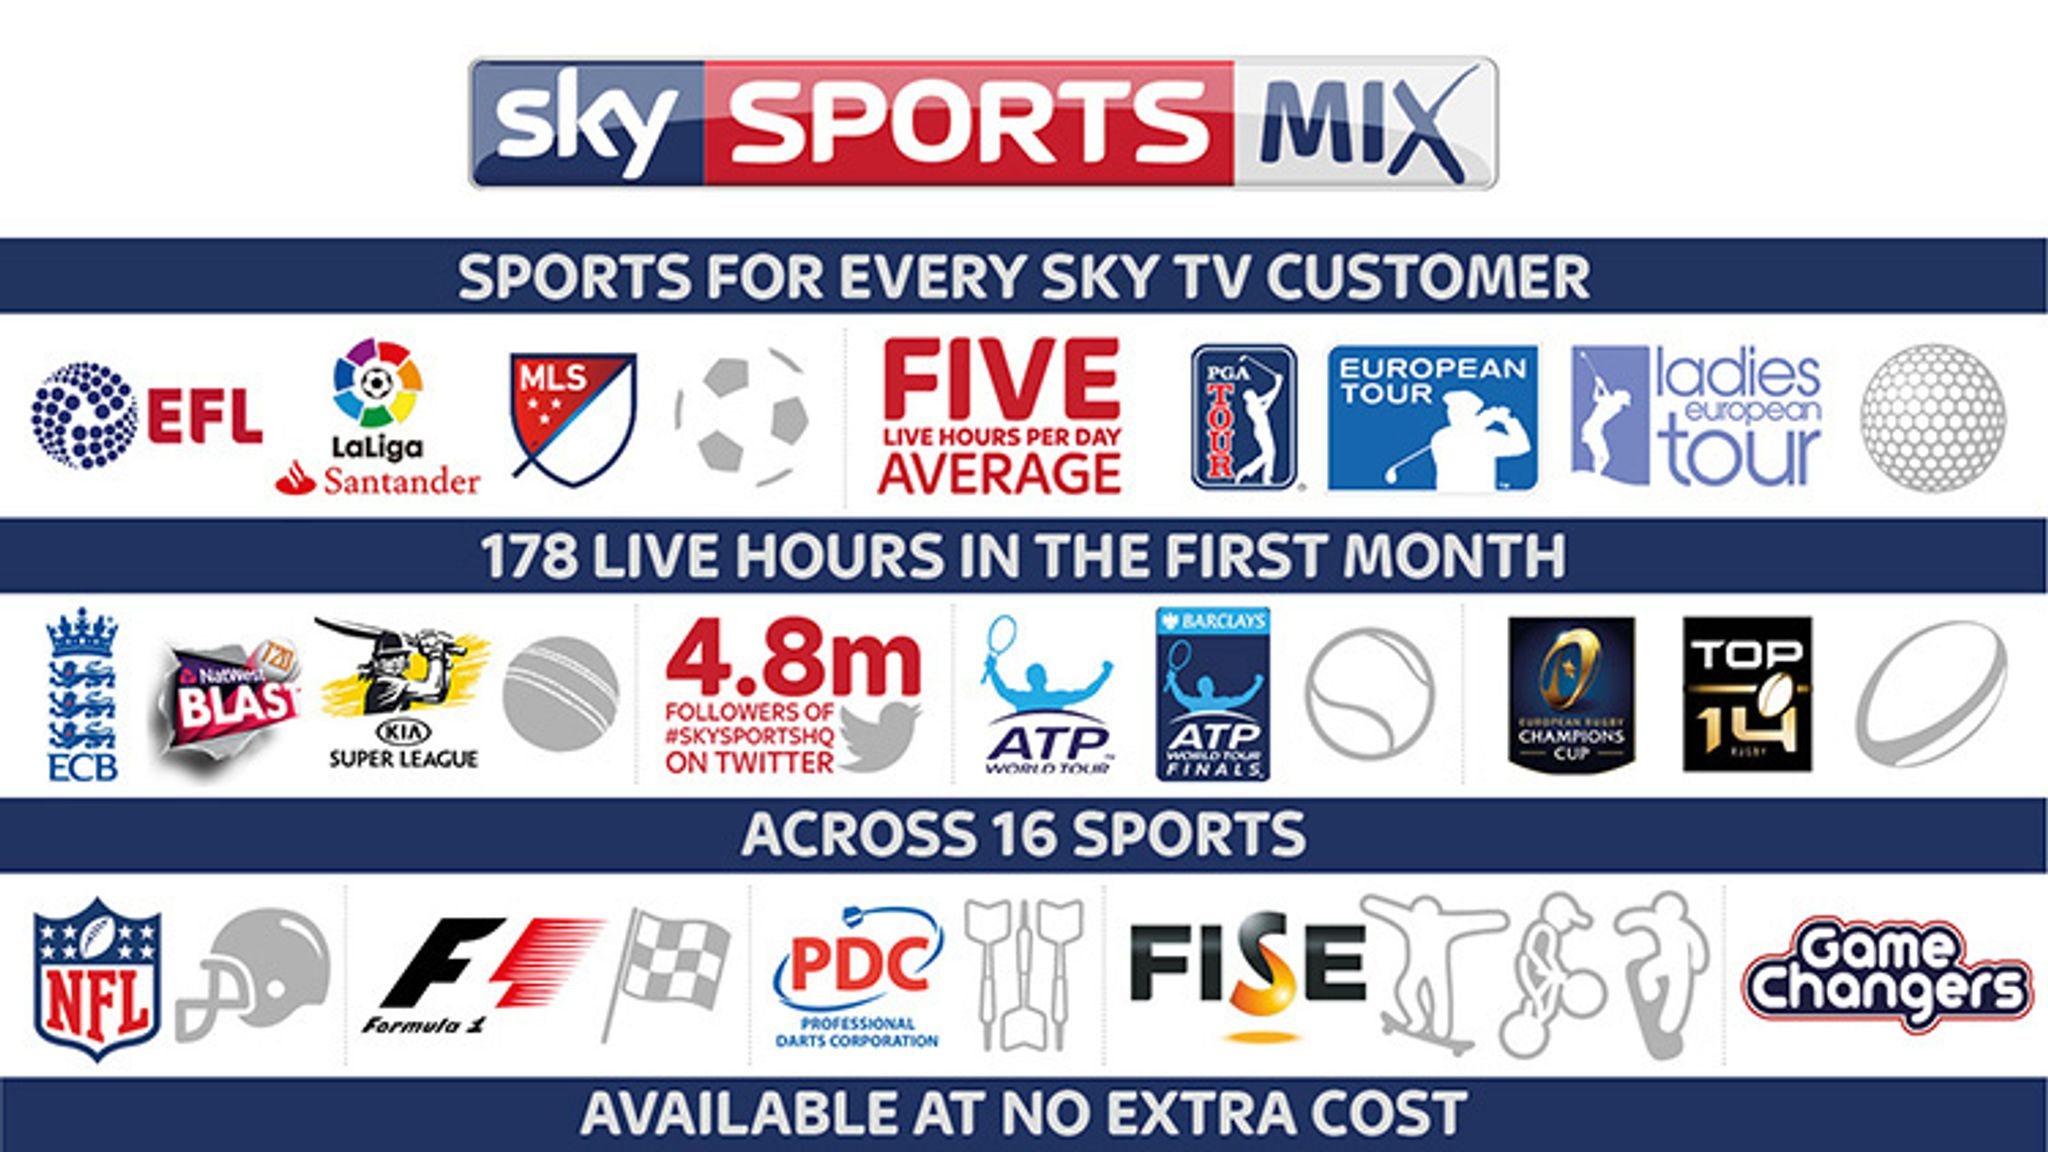 New channel Sky Sports Mix launches today | News News | Sky